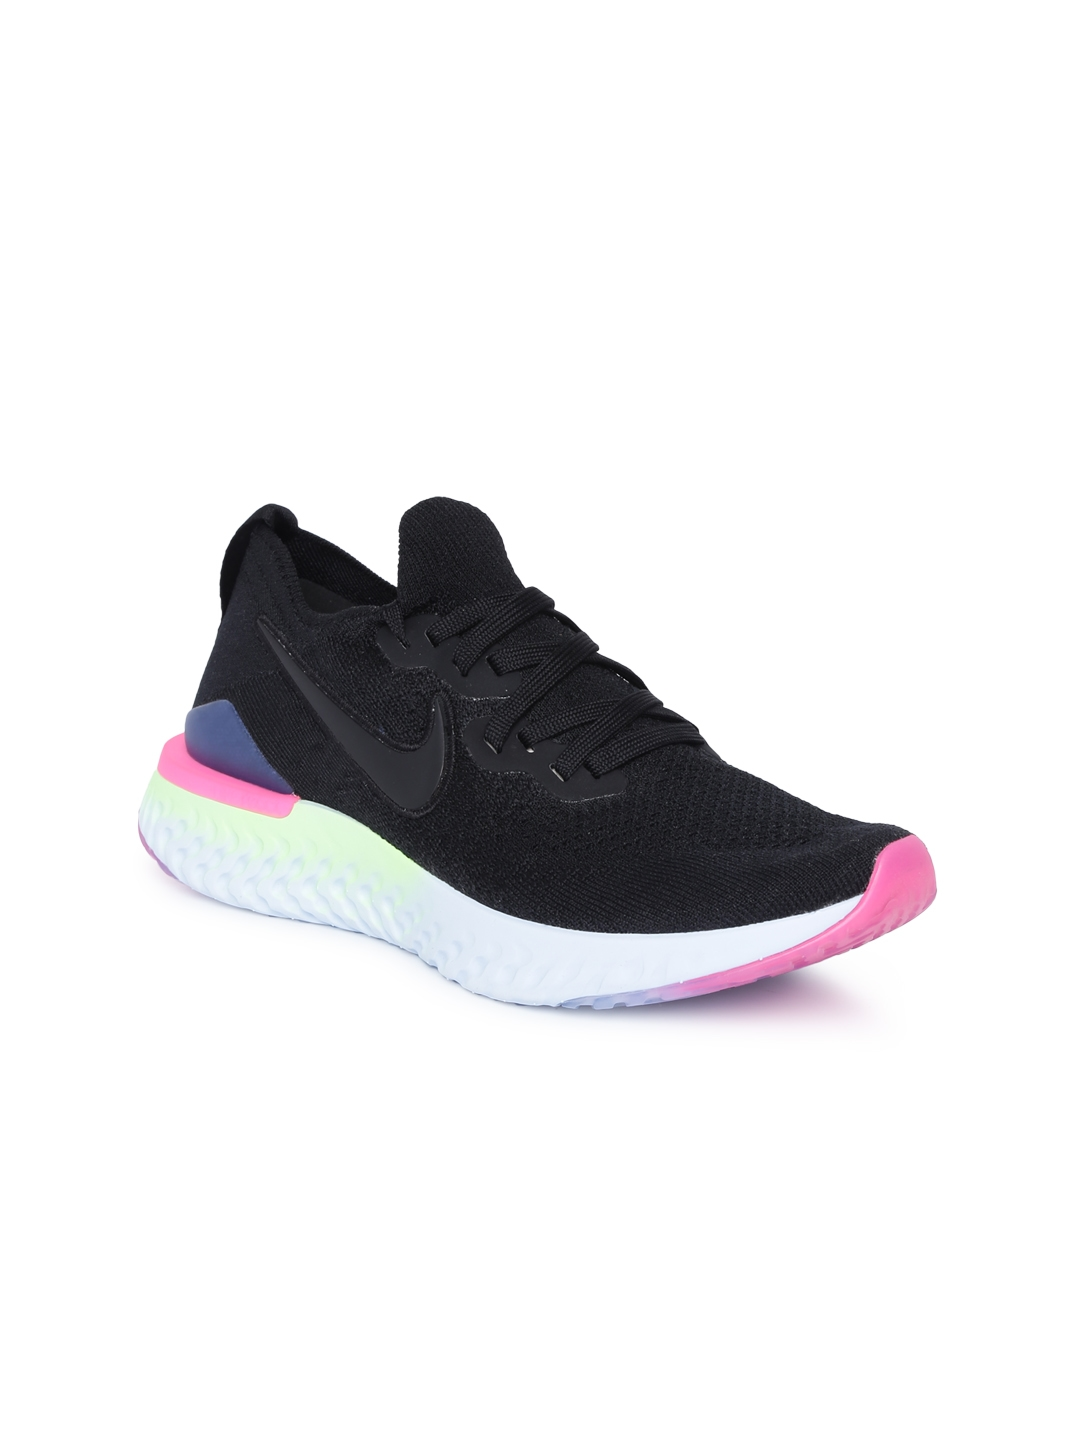 9a7ab9af4faf Buy Nike Women Black EPIC REACT FLYKNIT 2 Running Shoes - Sports ...